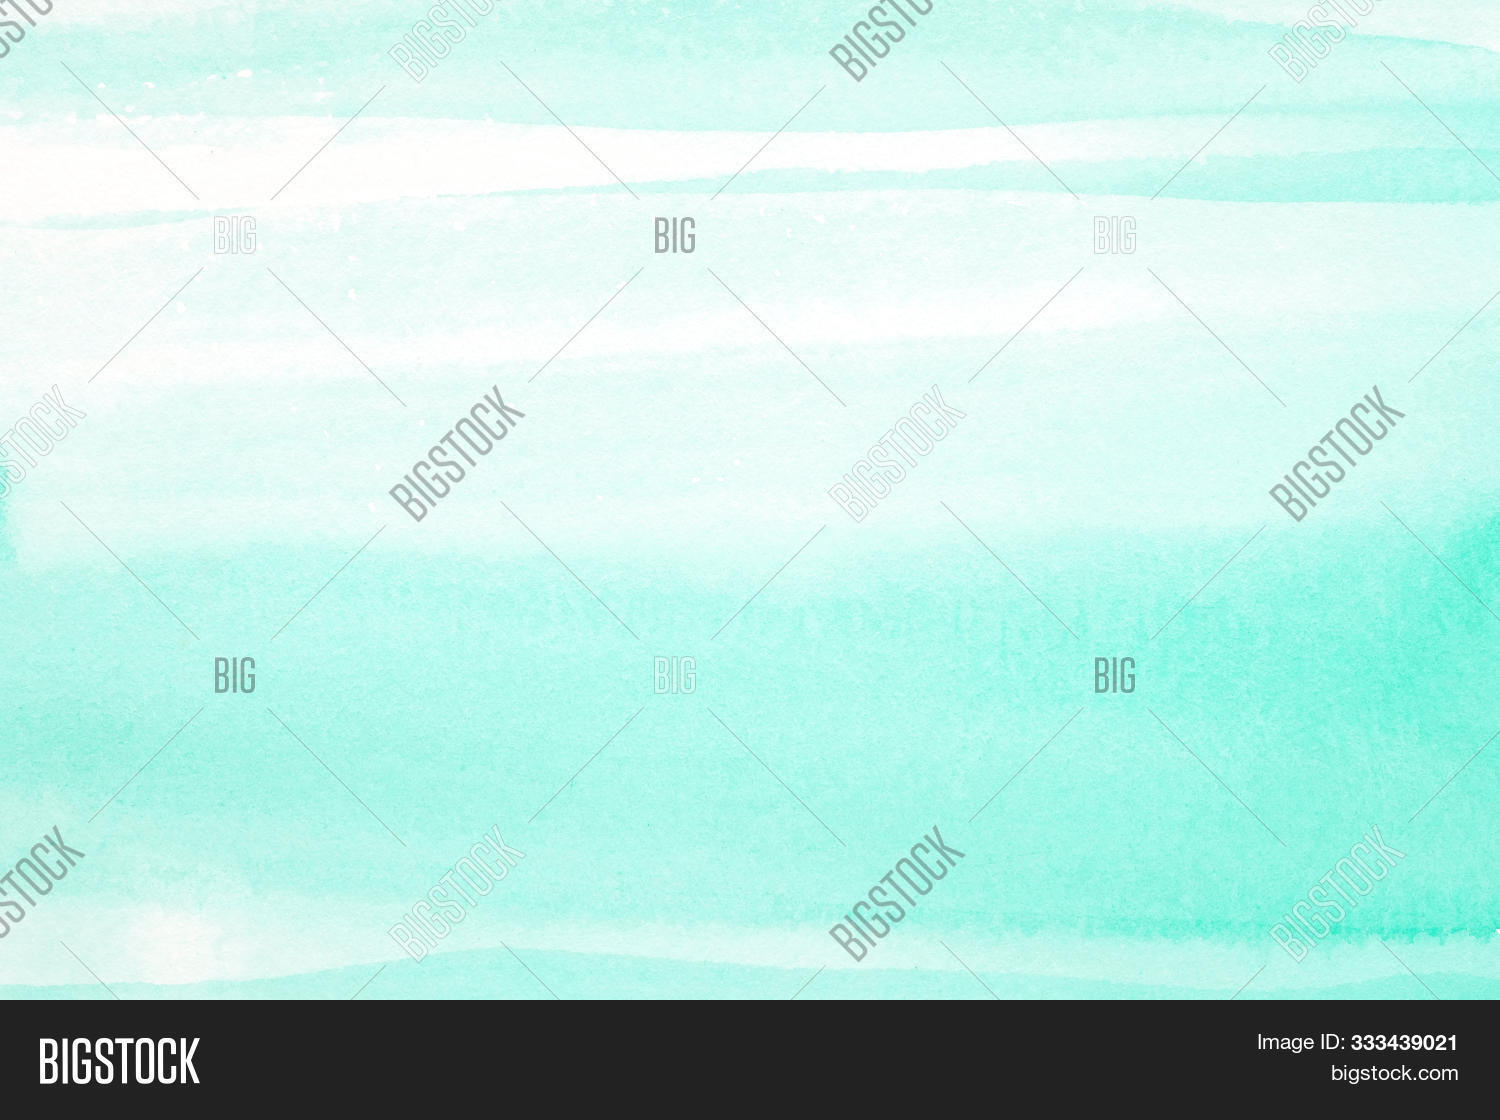 abstract,art,artistic,backdrop,background,banner,blank,bright,brush,color,colour,copy,design,drawing,element,graphic,green,handmade,layer,paint,paper,pattern,poster,space,splash,spring,stain,surface,template,texture,textured,wallpaper,water,watercolor,watercolour,wet,white